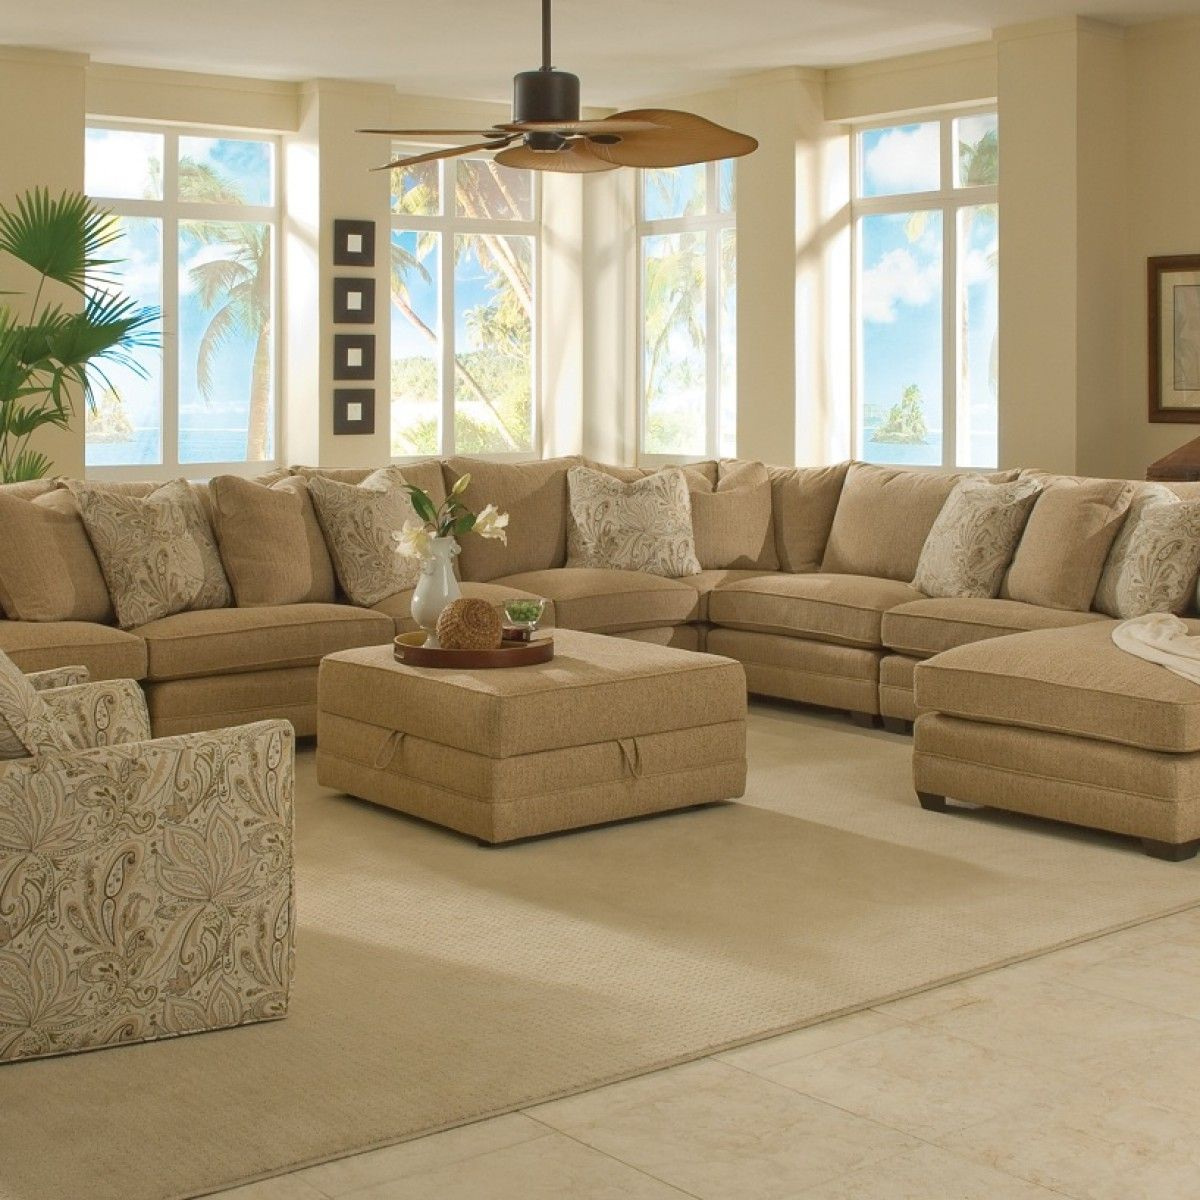 Magnificent large sectional sofas family room for Round couches for small living rooms